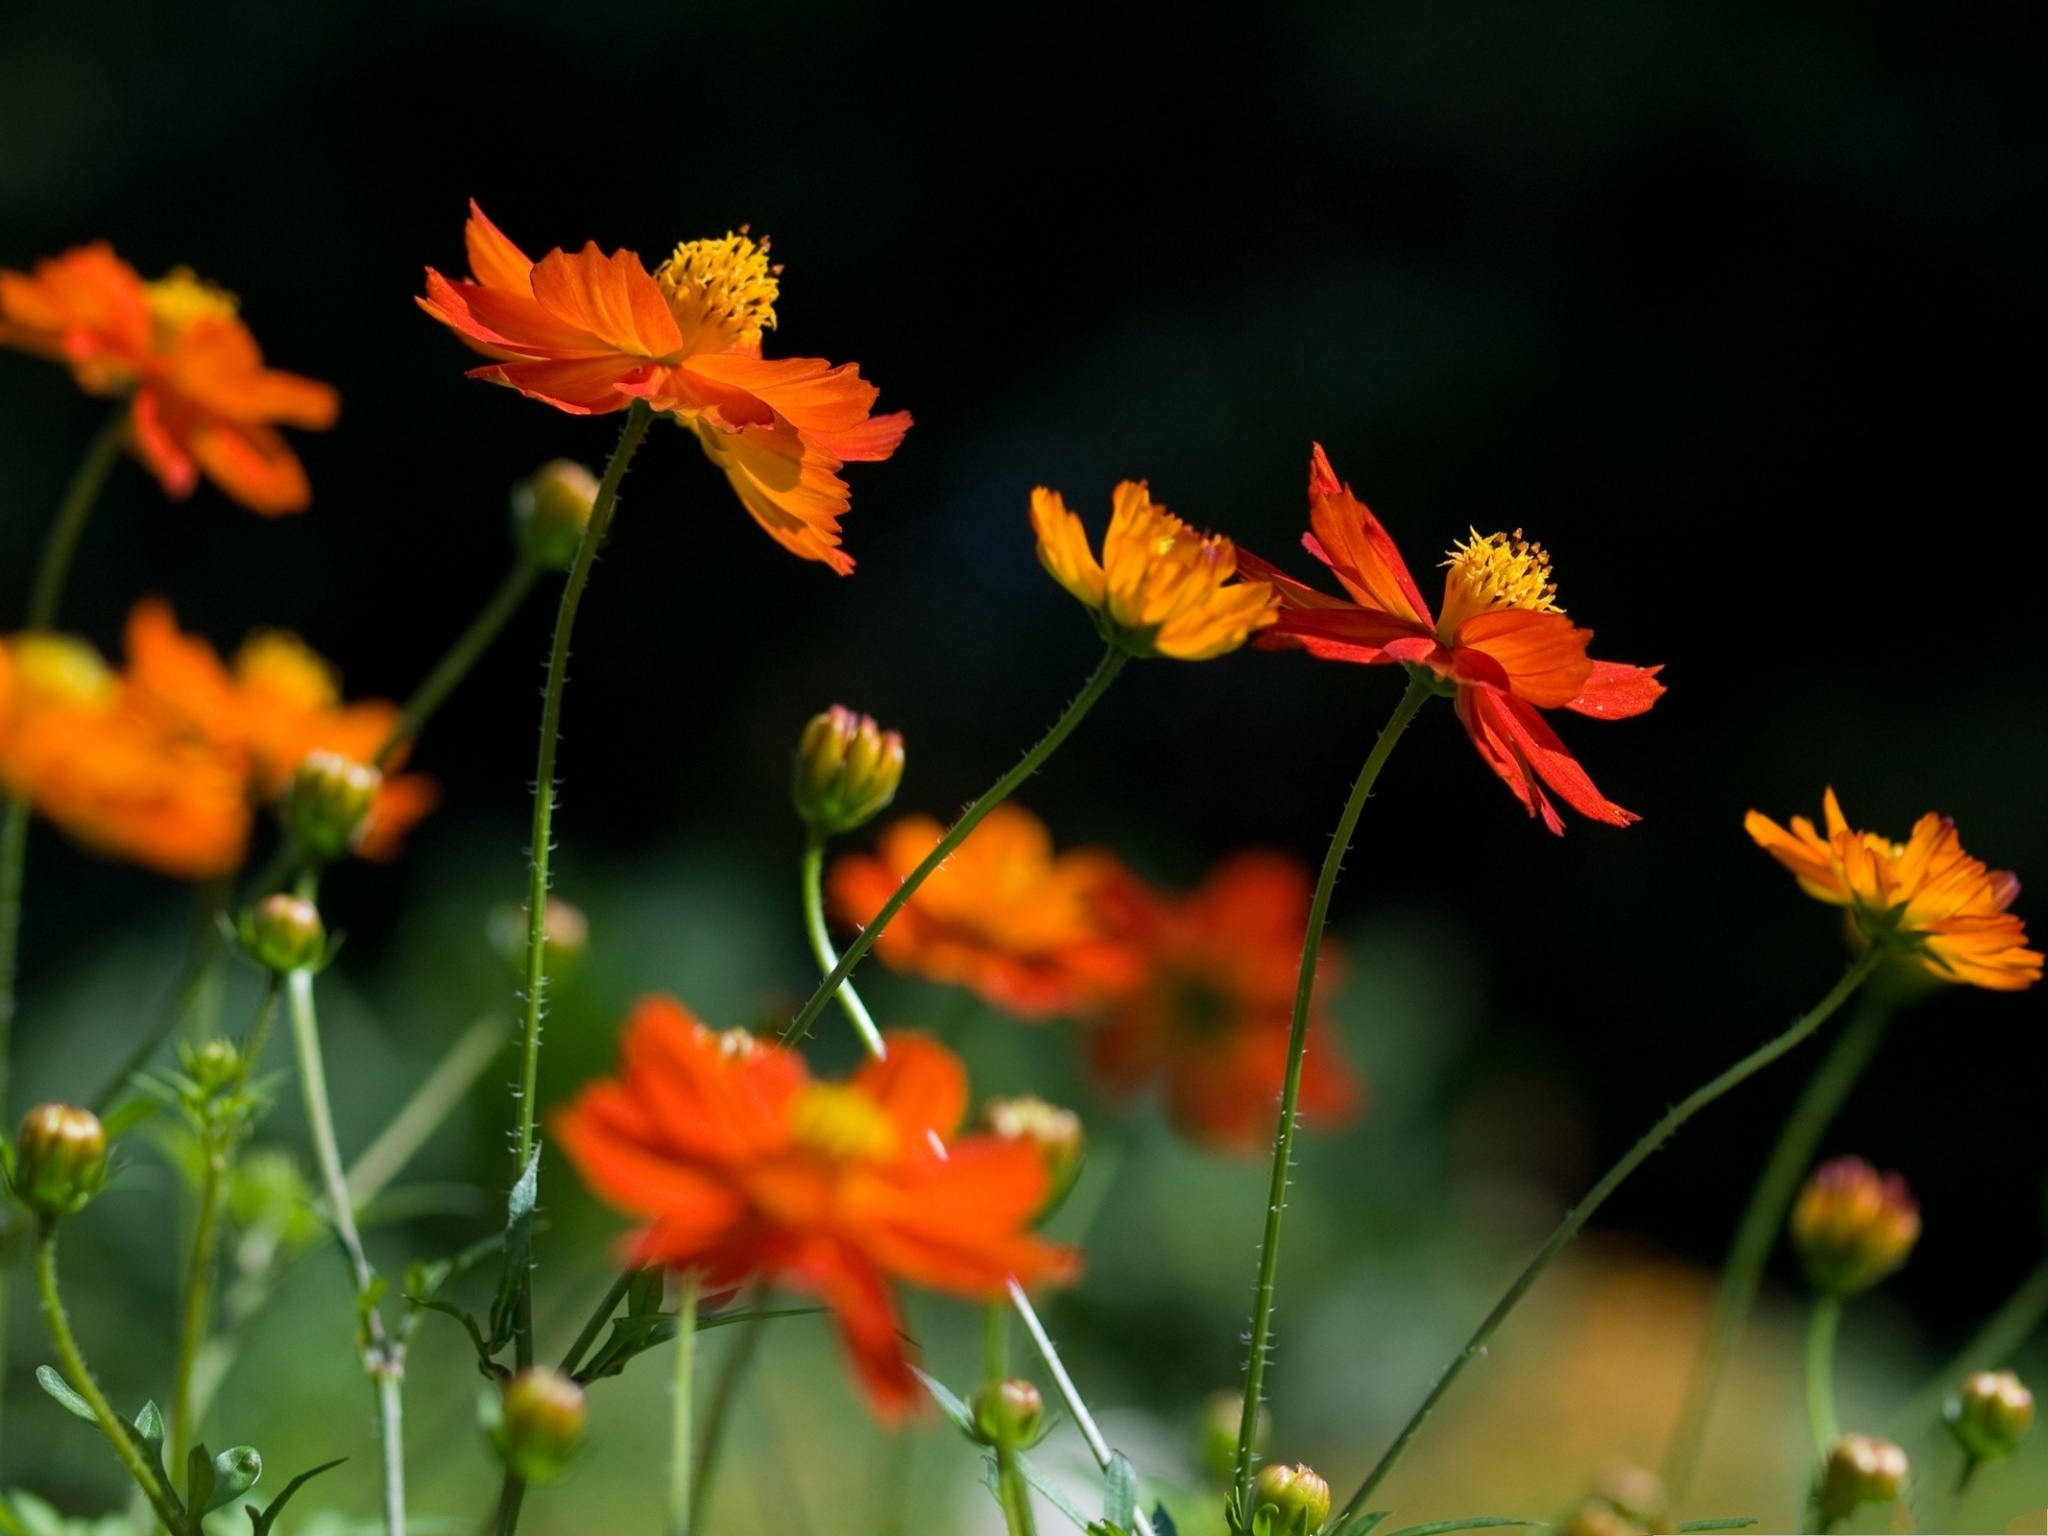 click to free download the wallpaper--Orange Cosmos Flowers, Bright-Colored Flowers in Bloom, Black Background 2048X1536 free wallpaper download